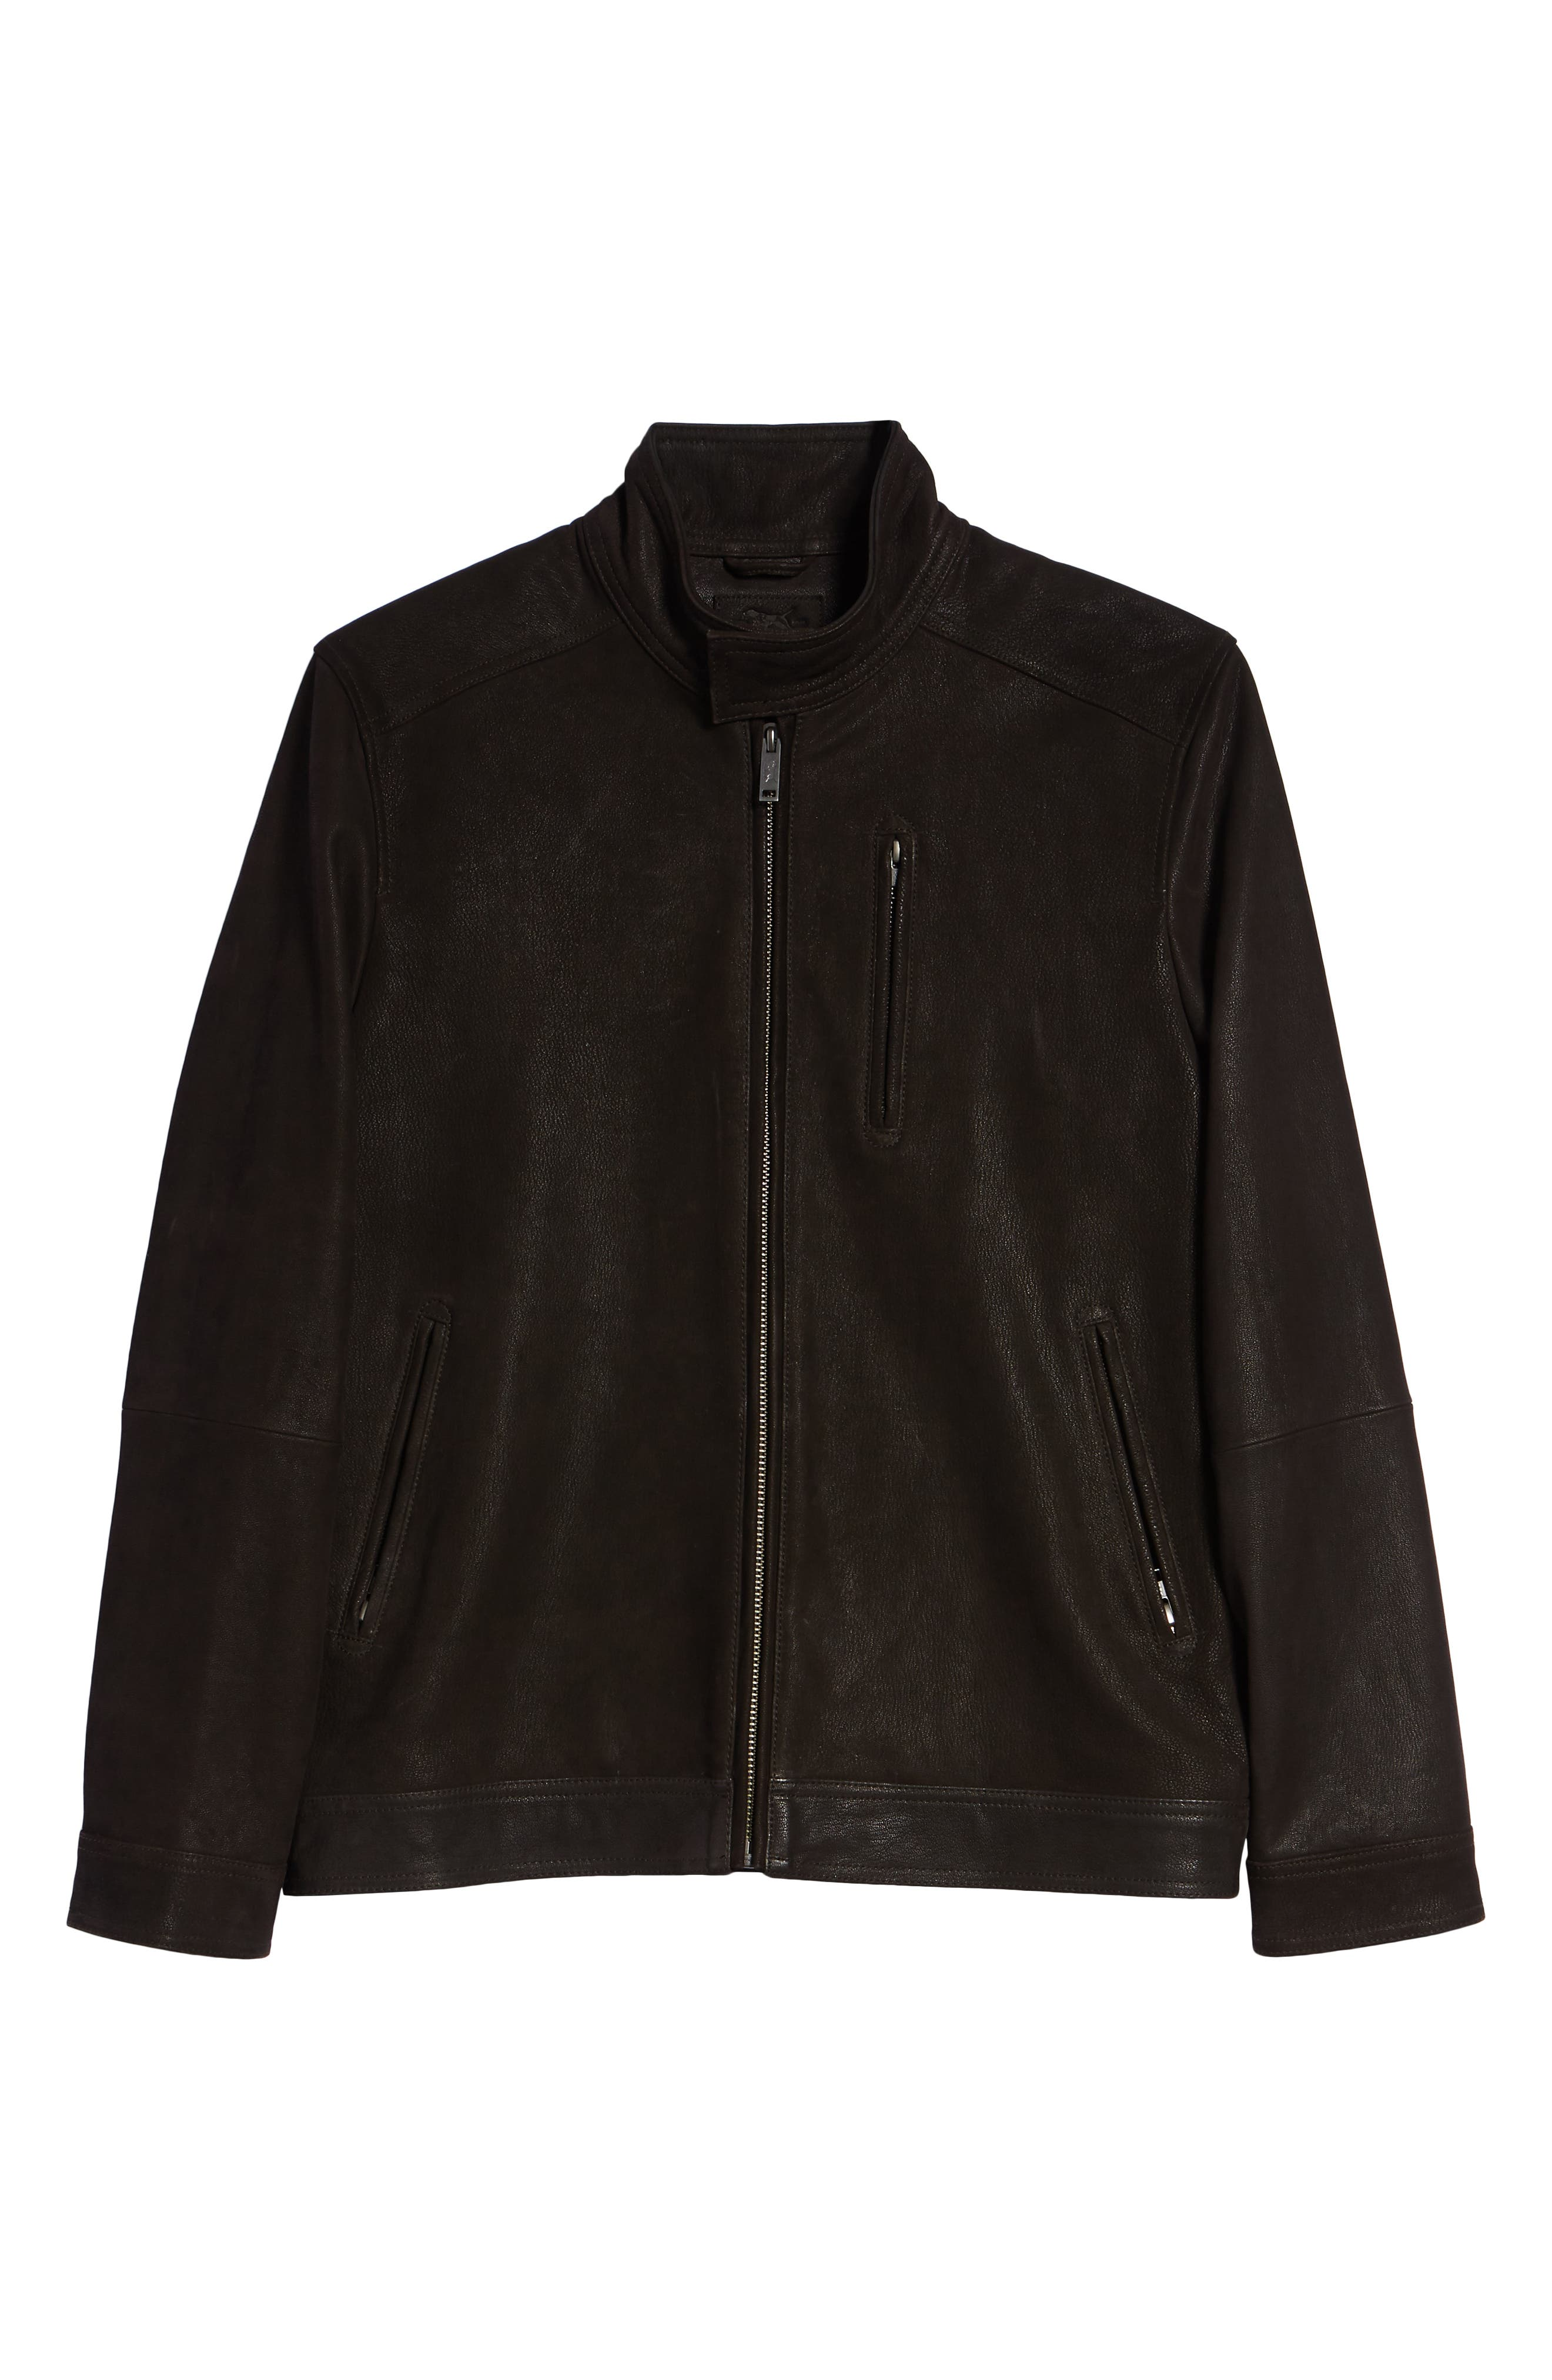 Westhaven Distressed Leather Bomber Jacket,                             Alternate thumbnail 5, color,                             CHOCOLATE